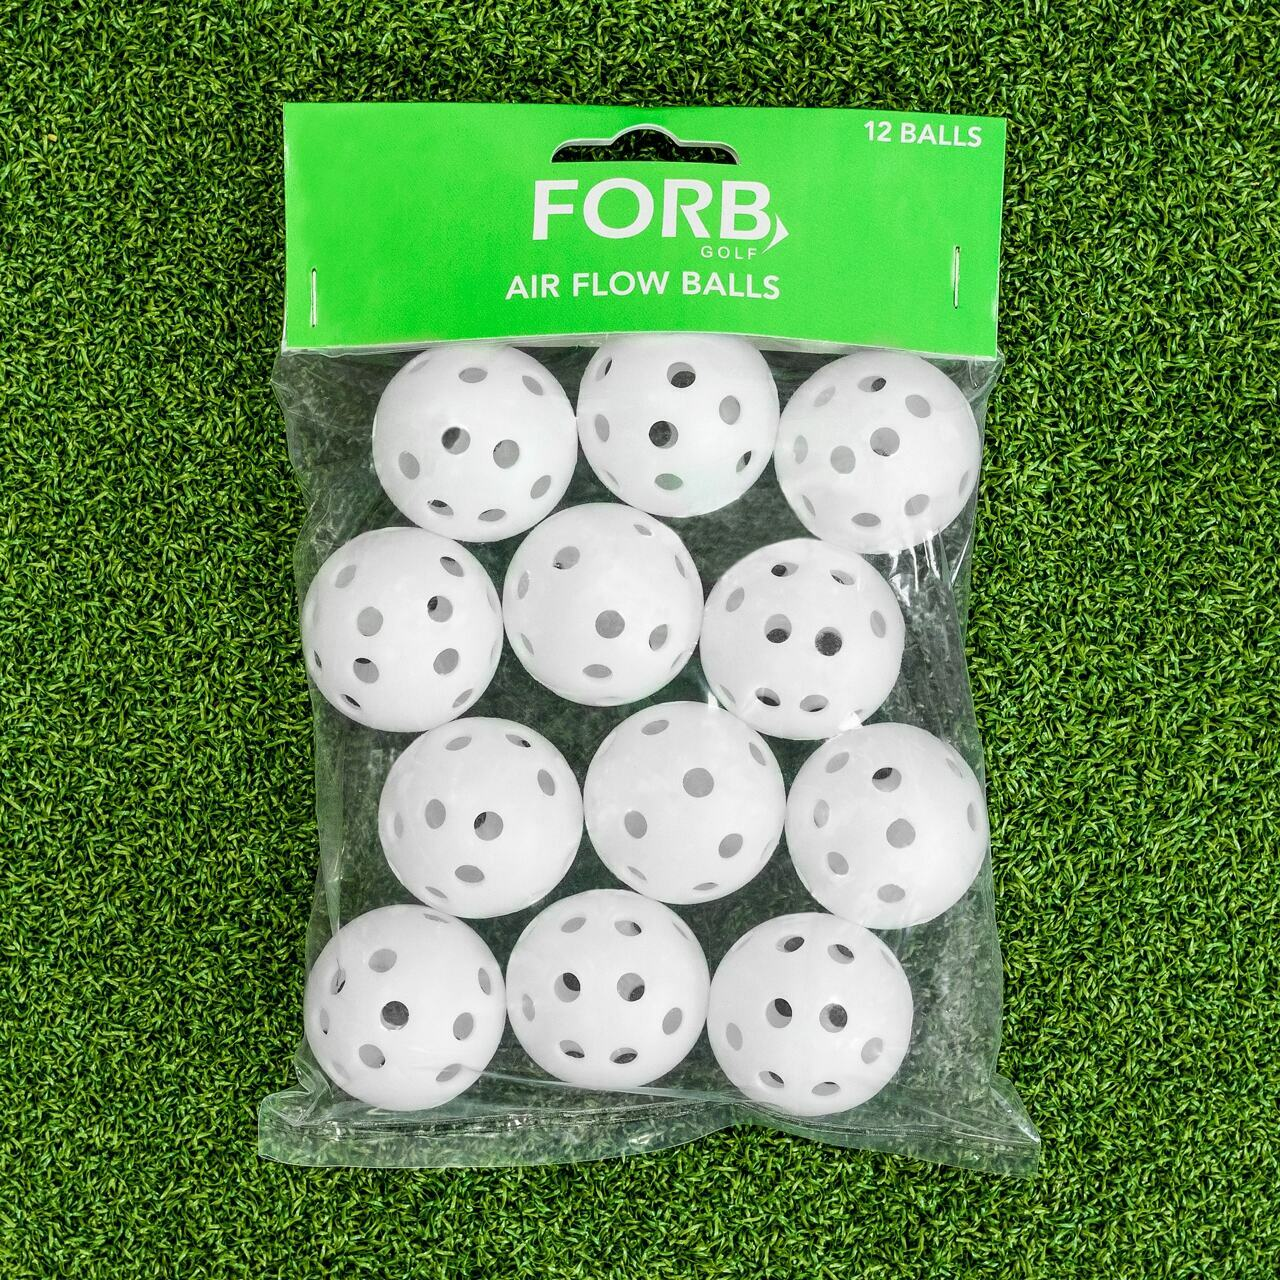 FORB Air Flow Plastic Golf Balls [12 Pack]